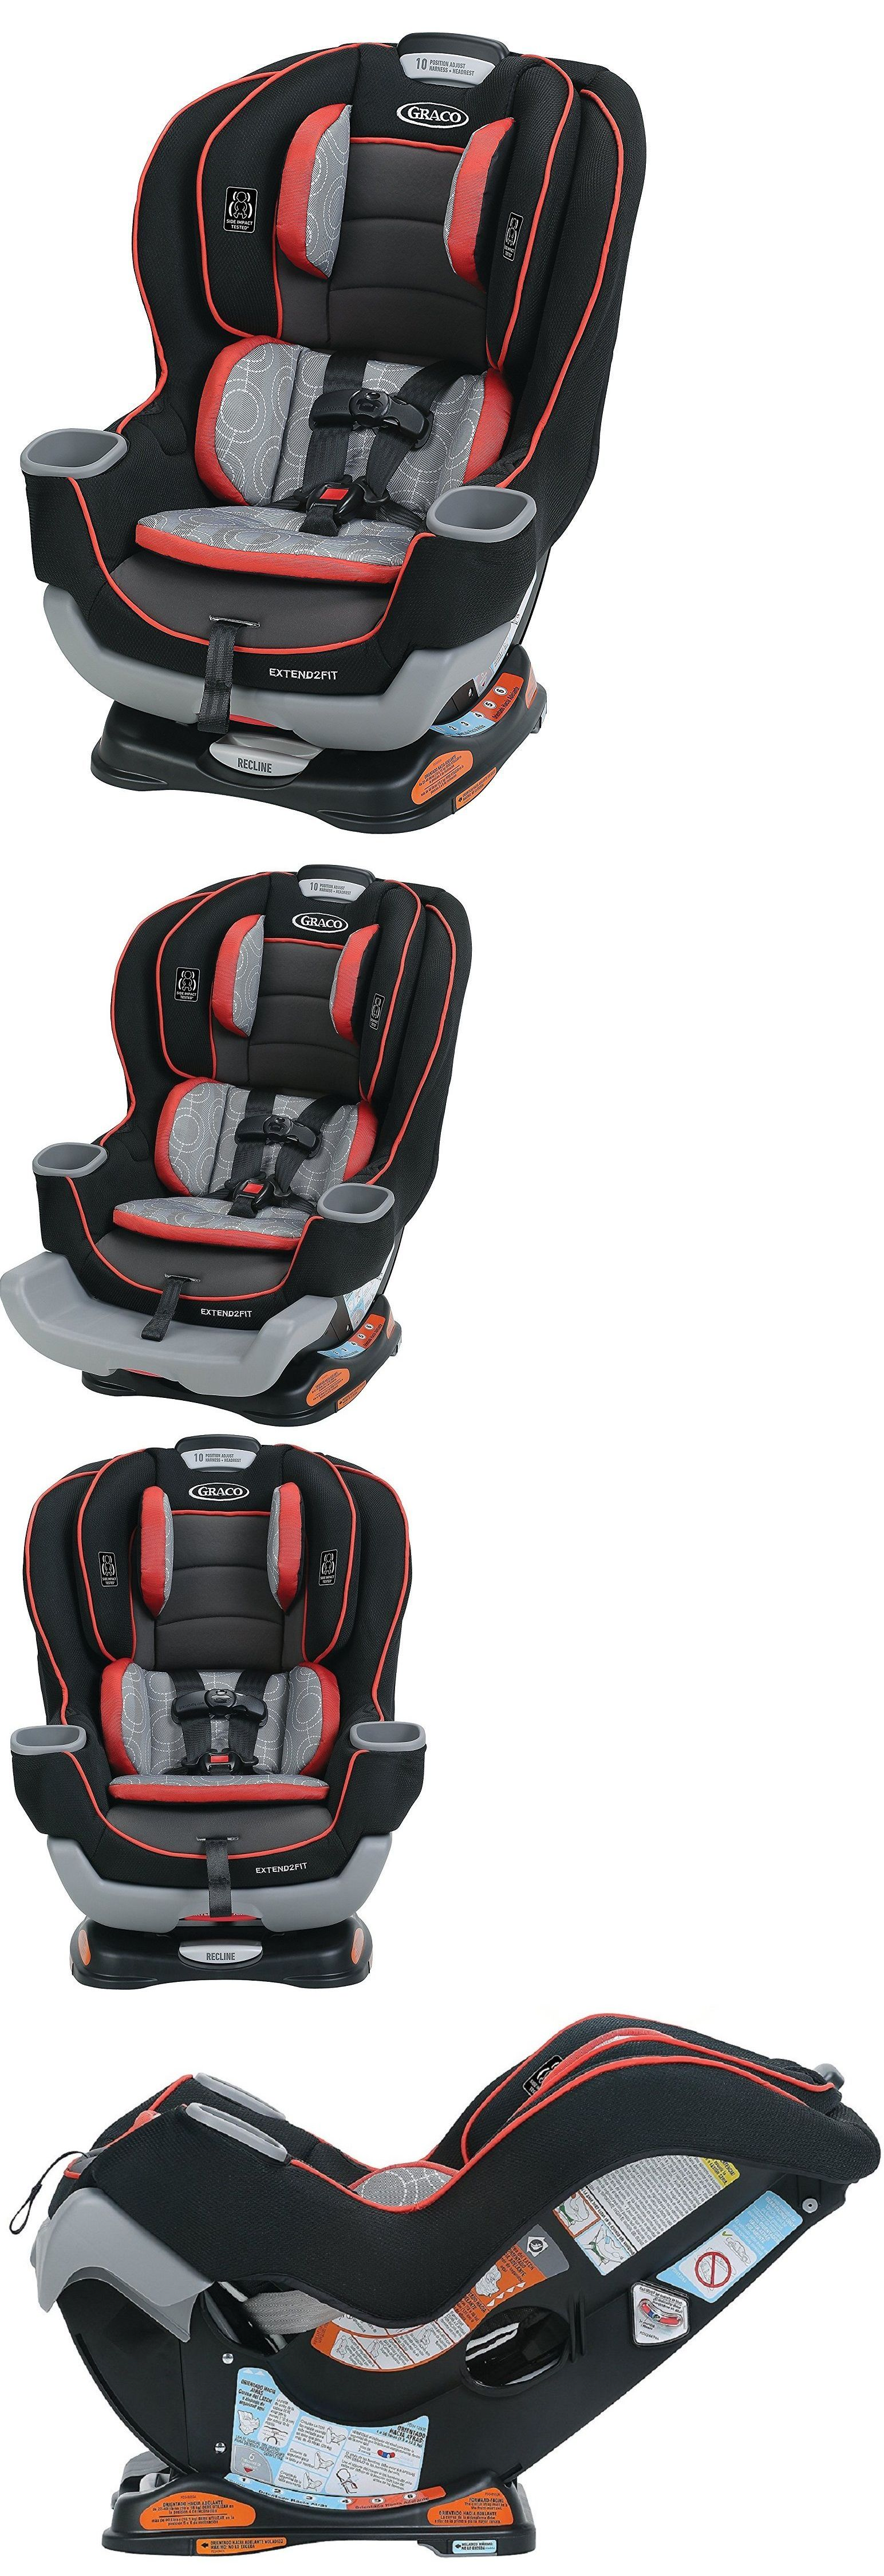 Other Car Safety Seats 2987 Graco Baby Extend2fit Convertible Seat Infant Child Solar New BUY IT NOW ONLY 199 On EBay